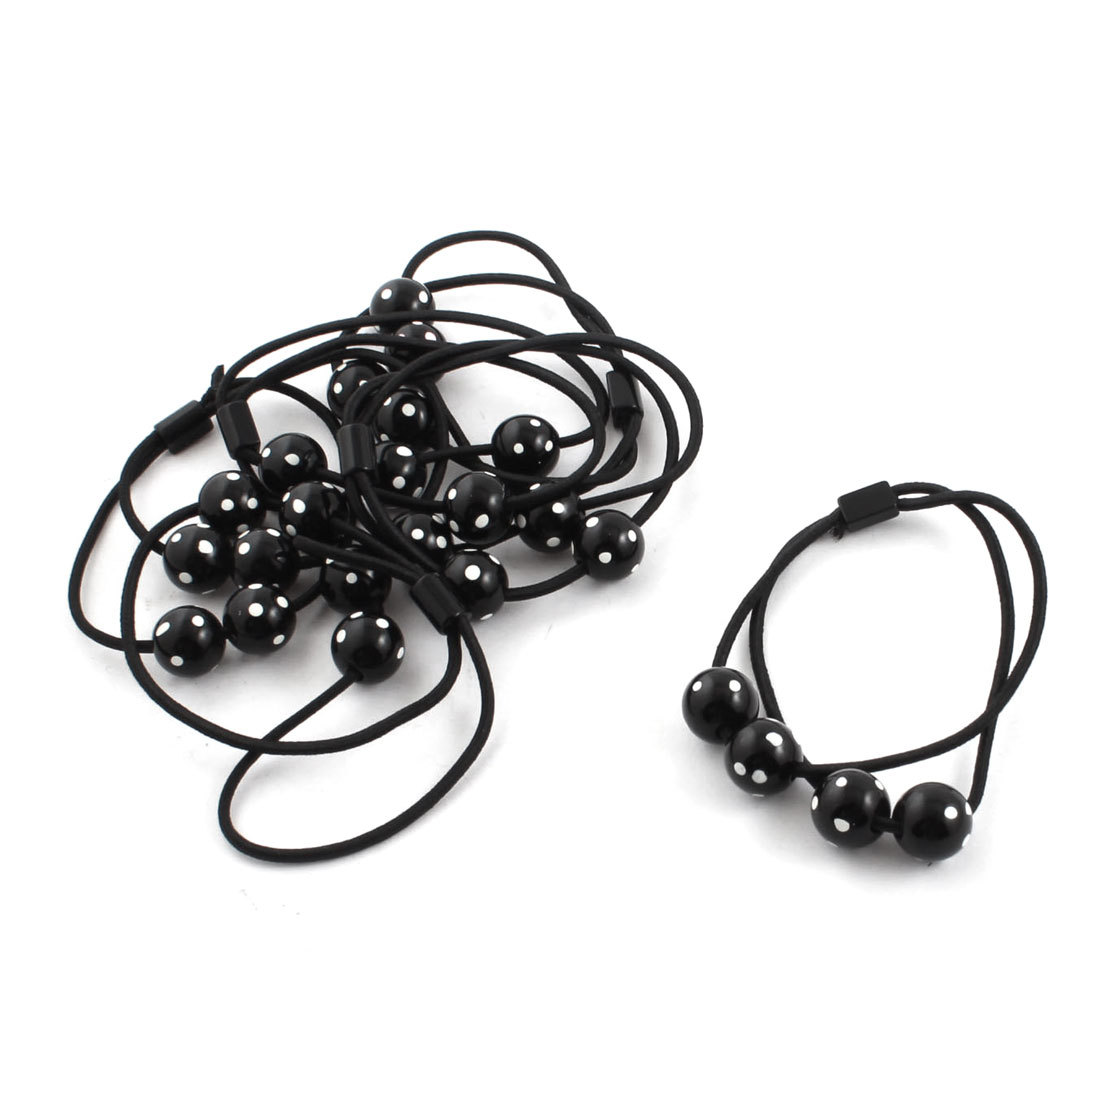 6 Pcs White Dots Print Beads Accent Stretchy Hair Bands Ponytail Holders Black